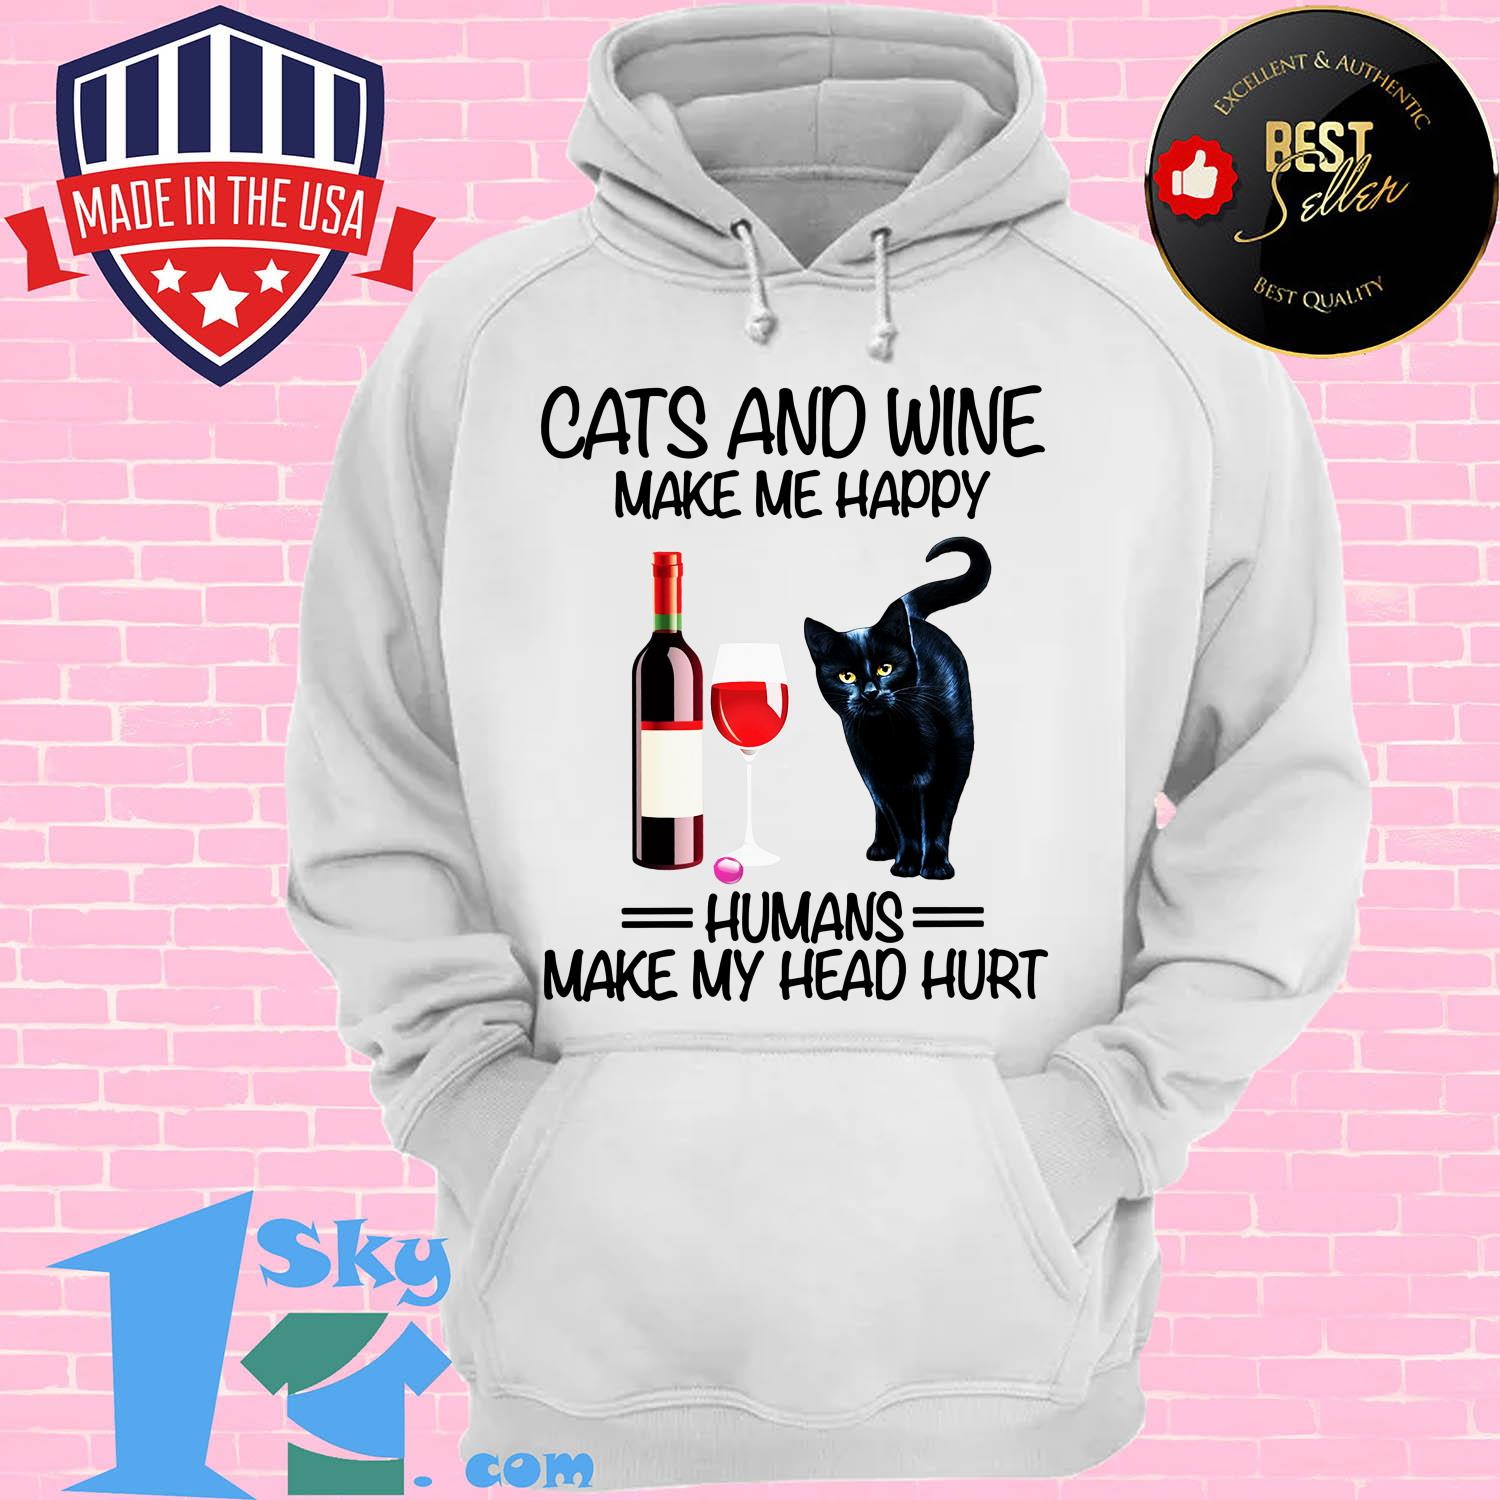 cats and wine make me happy humans make my head hurt hoodie - Cats and wine make me happy humans make my head hurt shirt